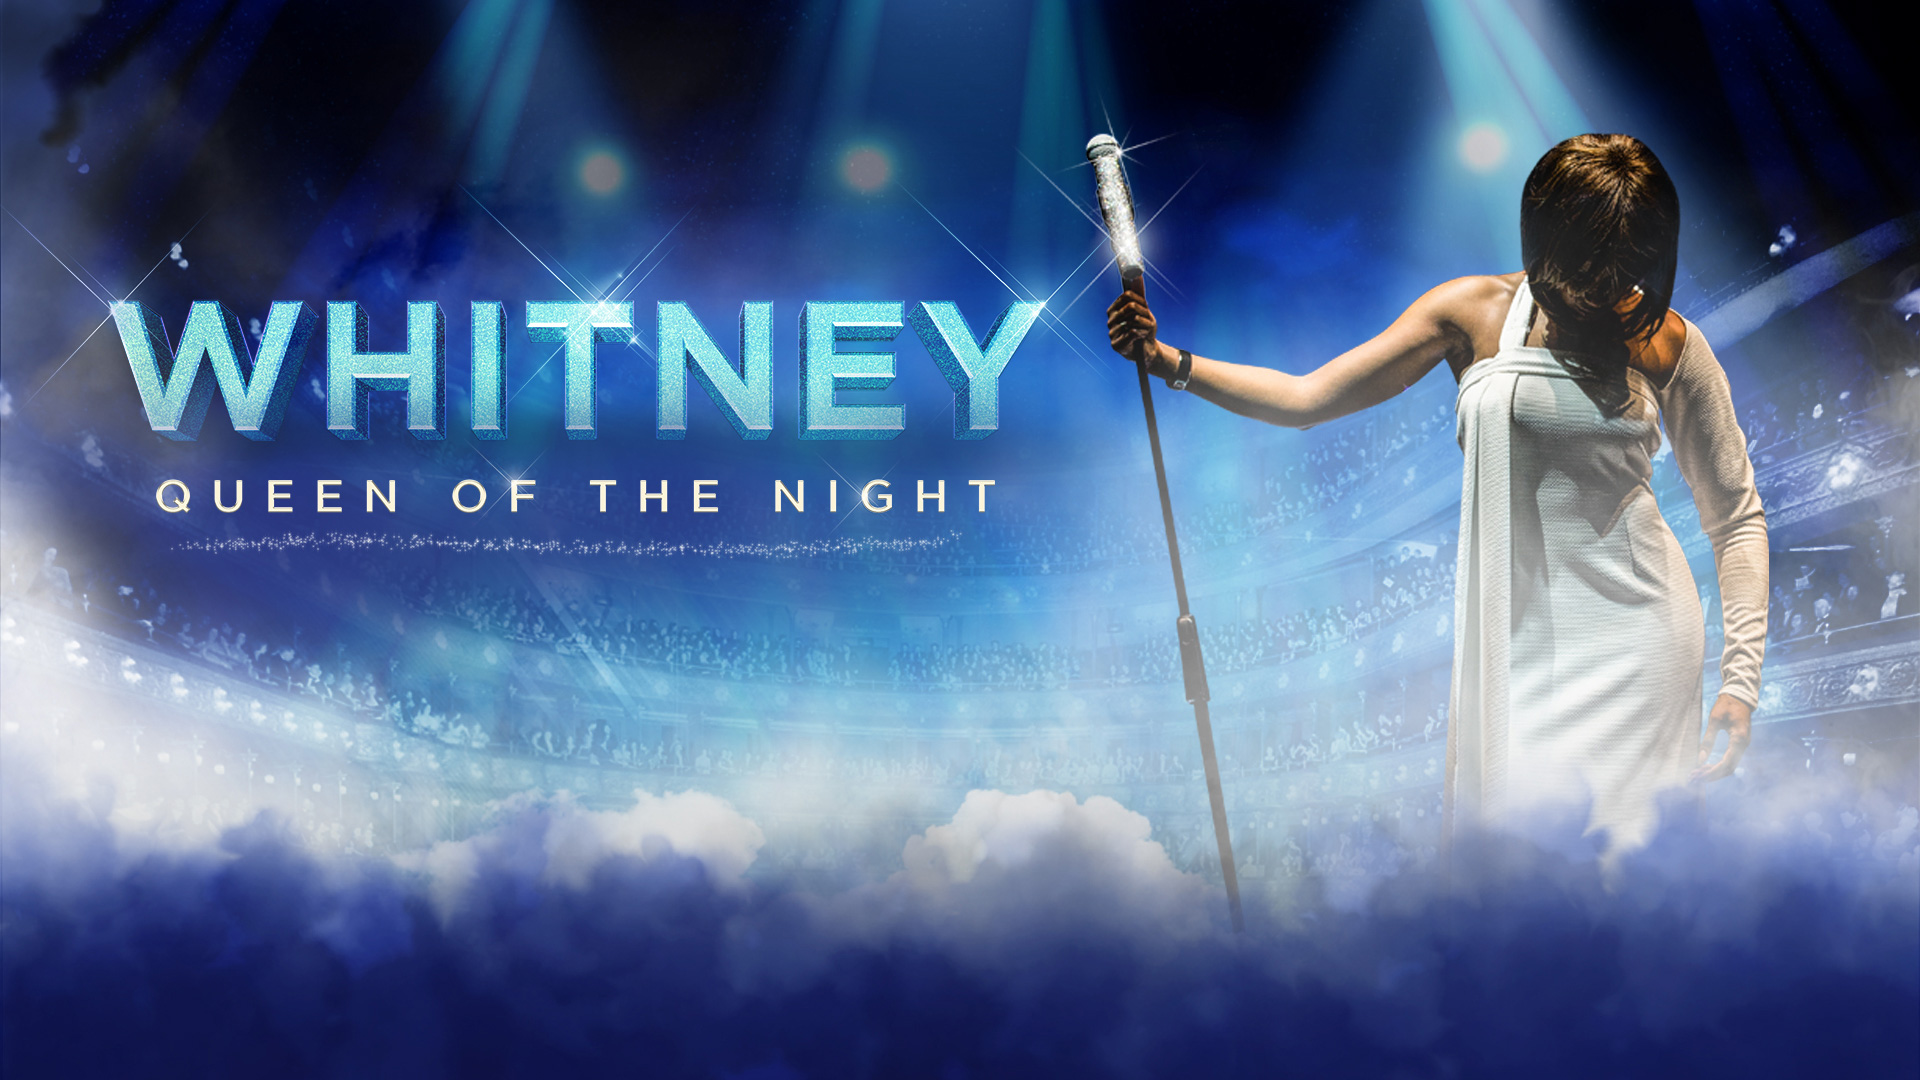 Whitney - Queen of the Night promo image